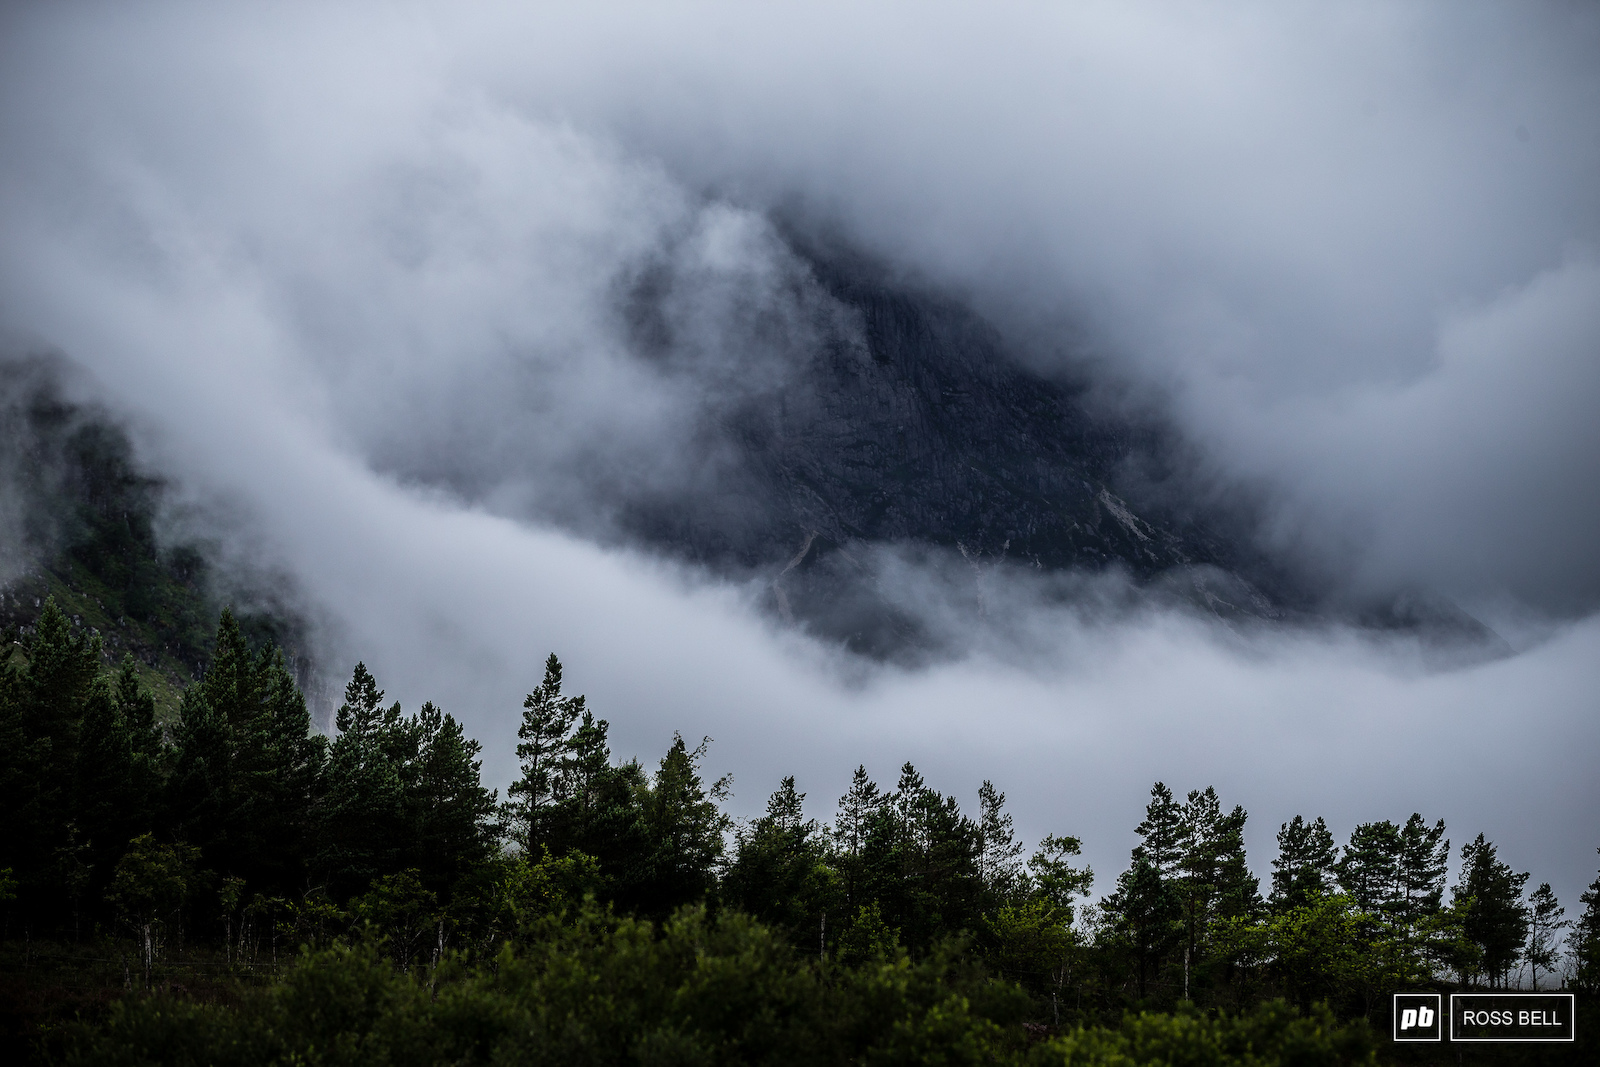 The famous Buachaille Etive M r peaking out from the cloud.